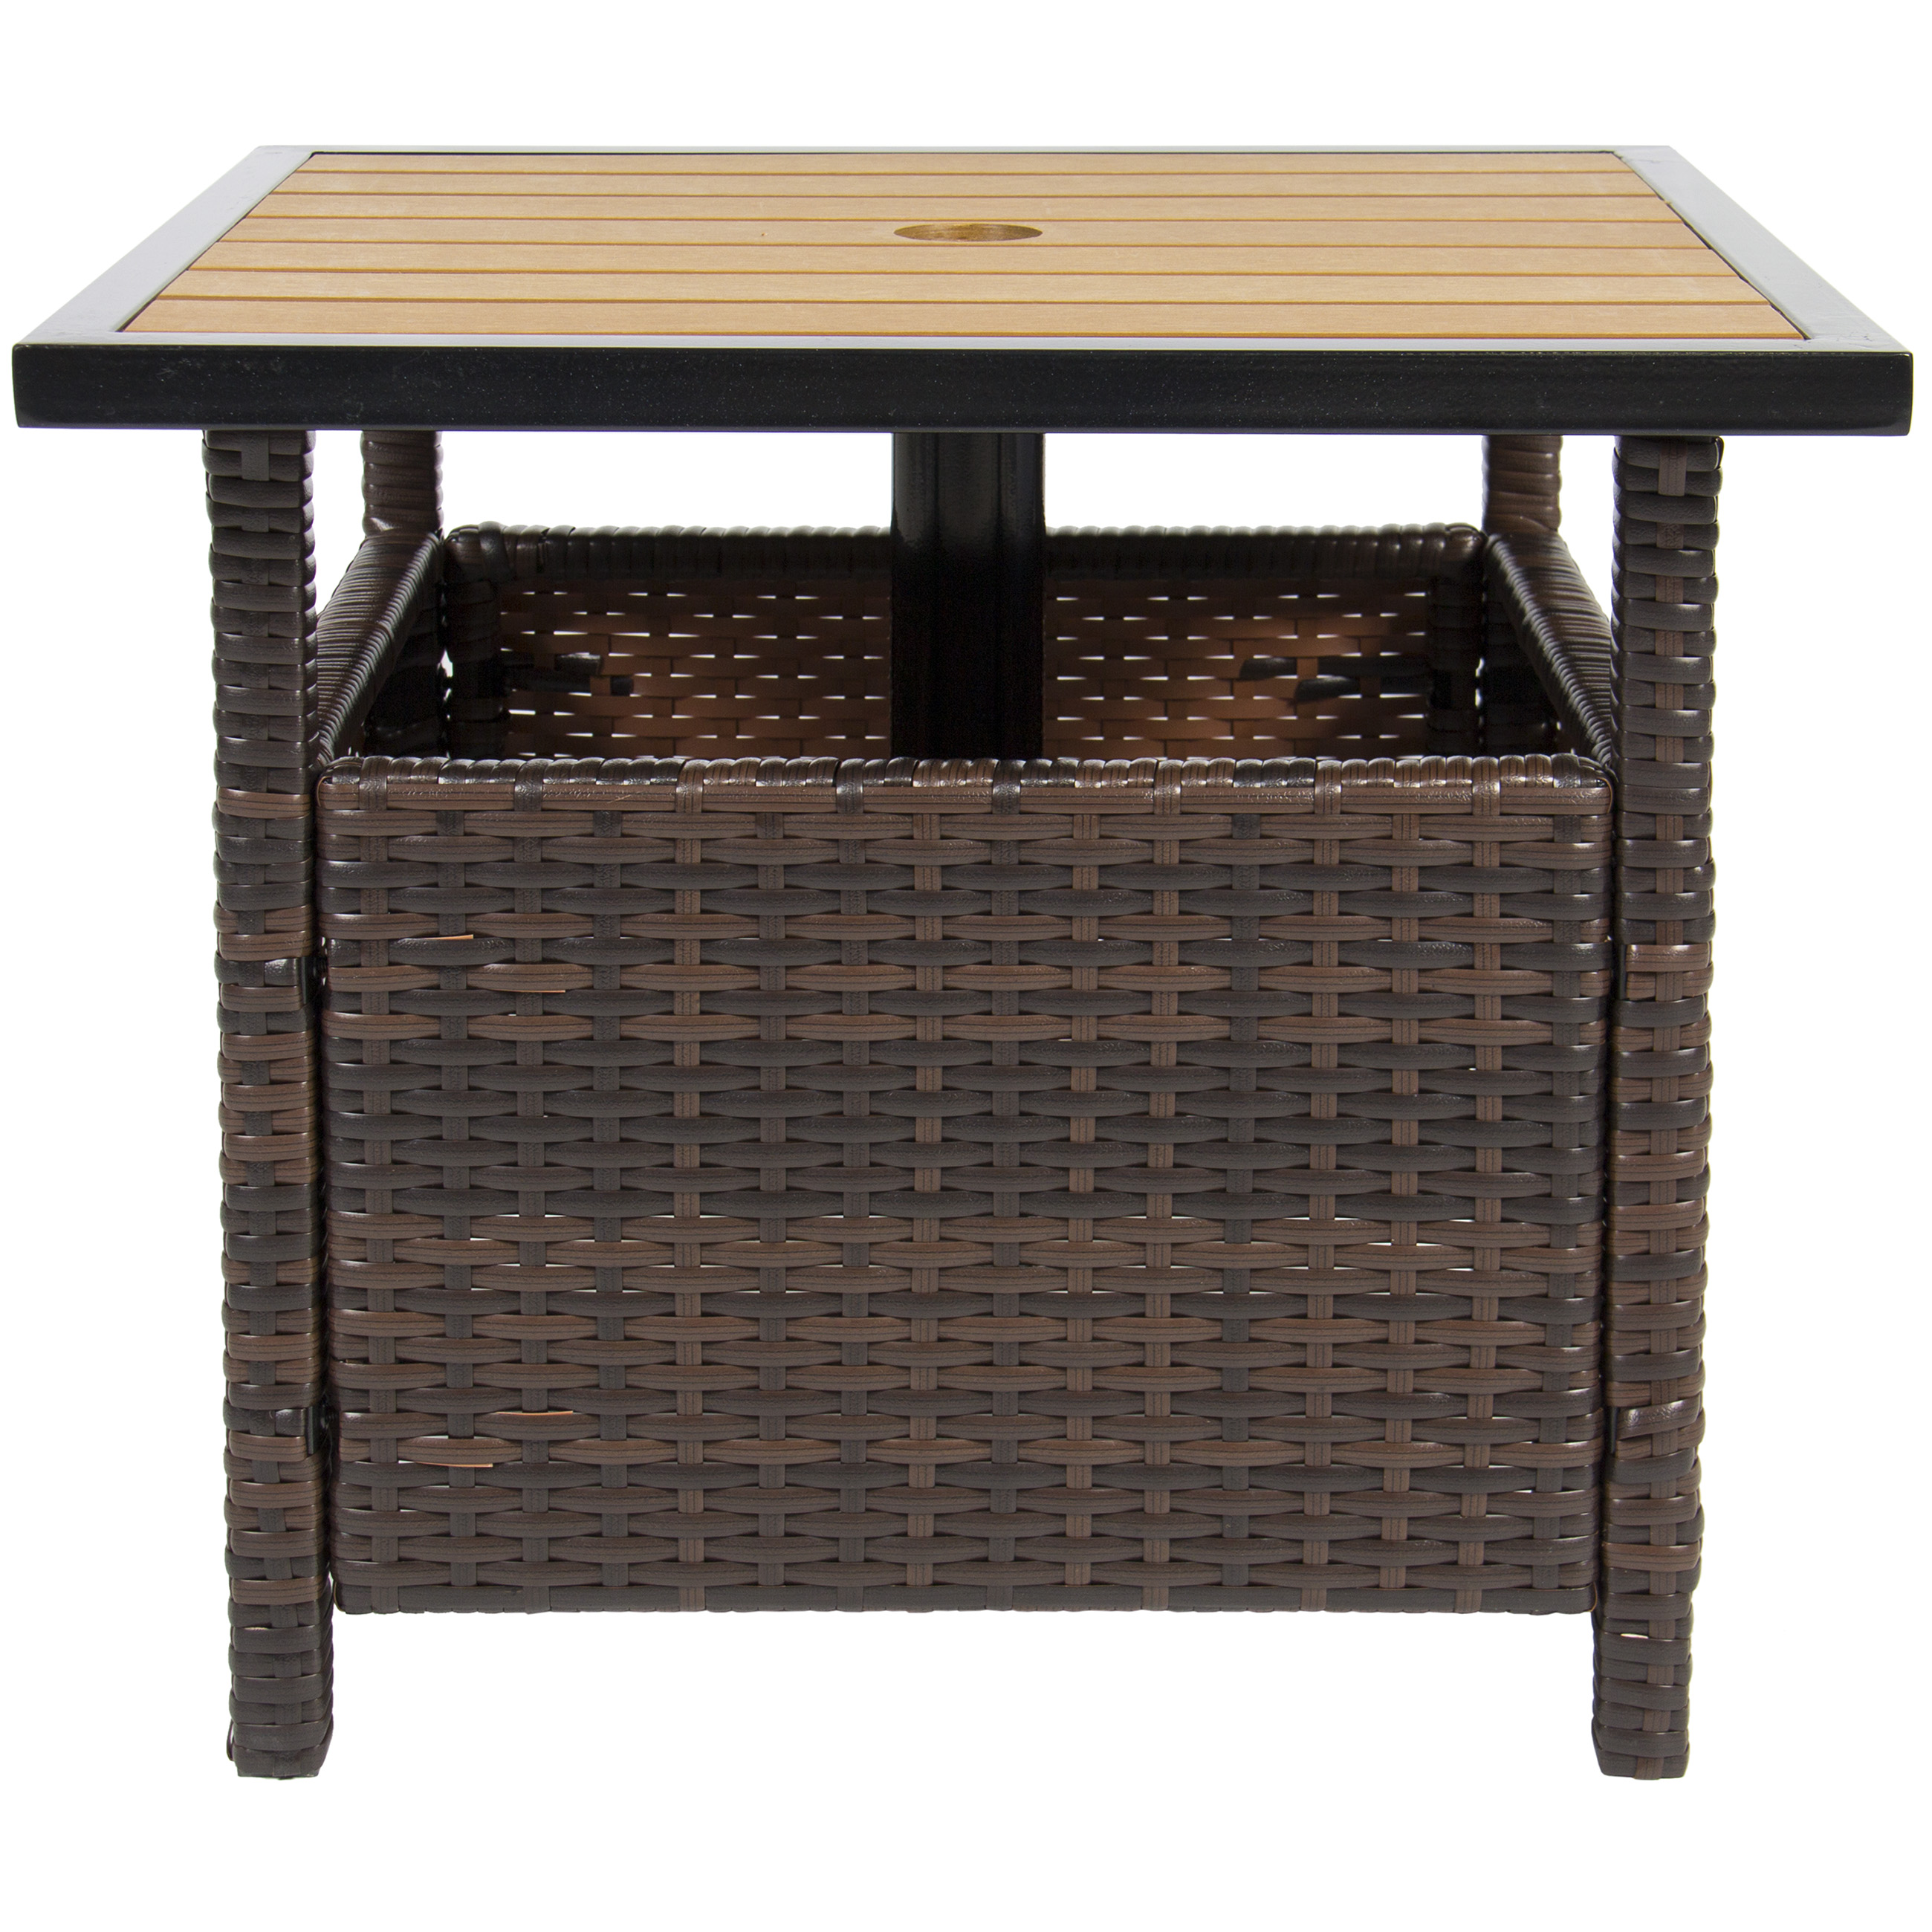 Patio Umbrella Stand Table: BCP Patio Umbrella Stand Wicker Rattan Outdoor Furniture